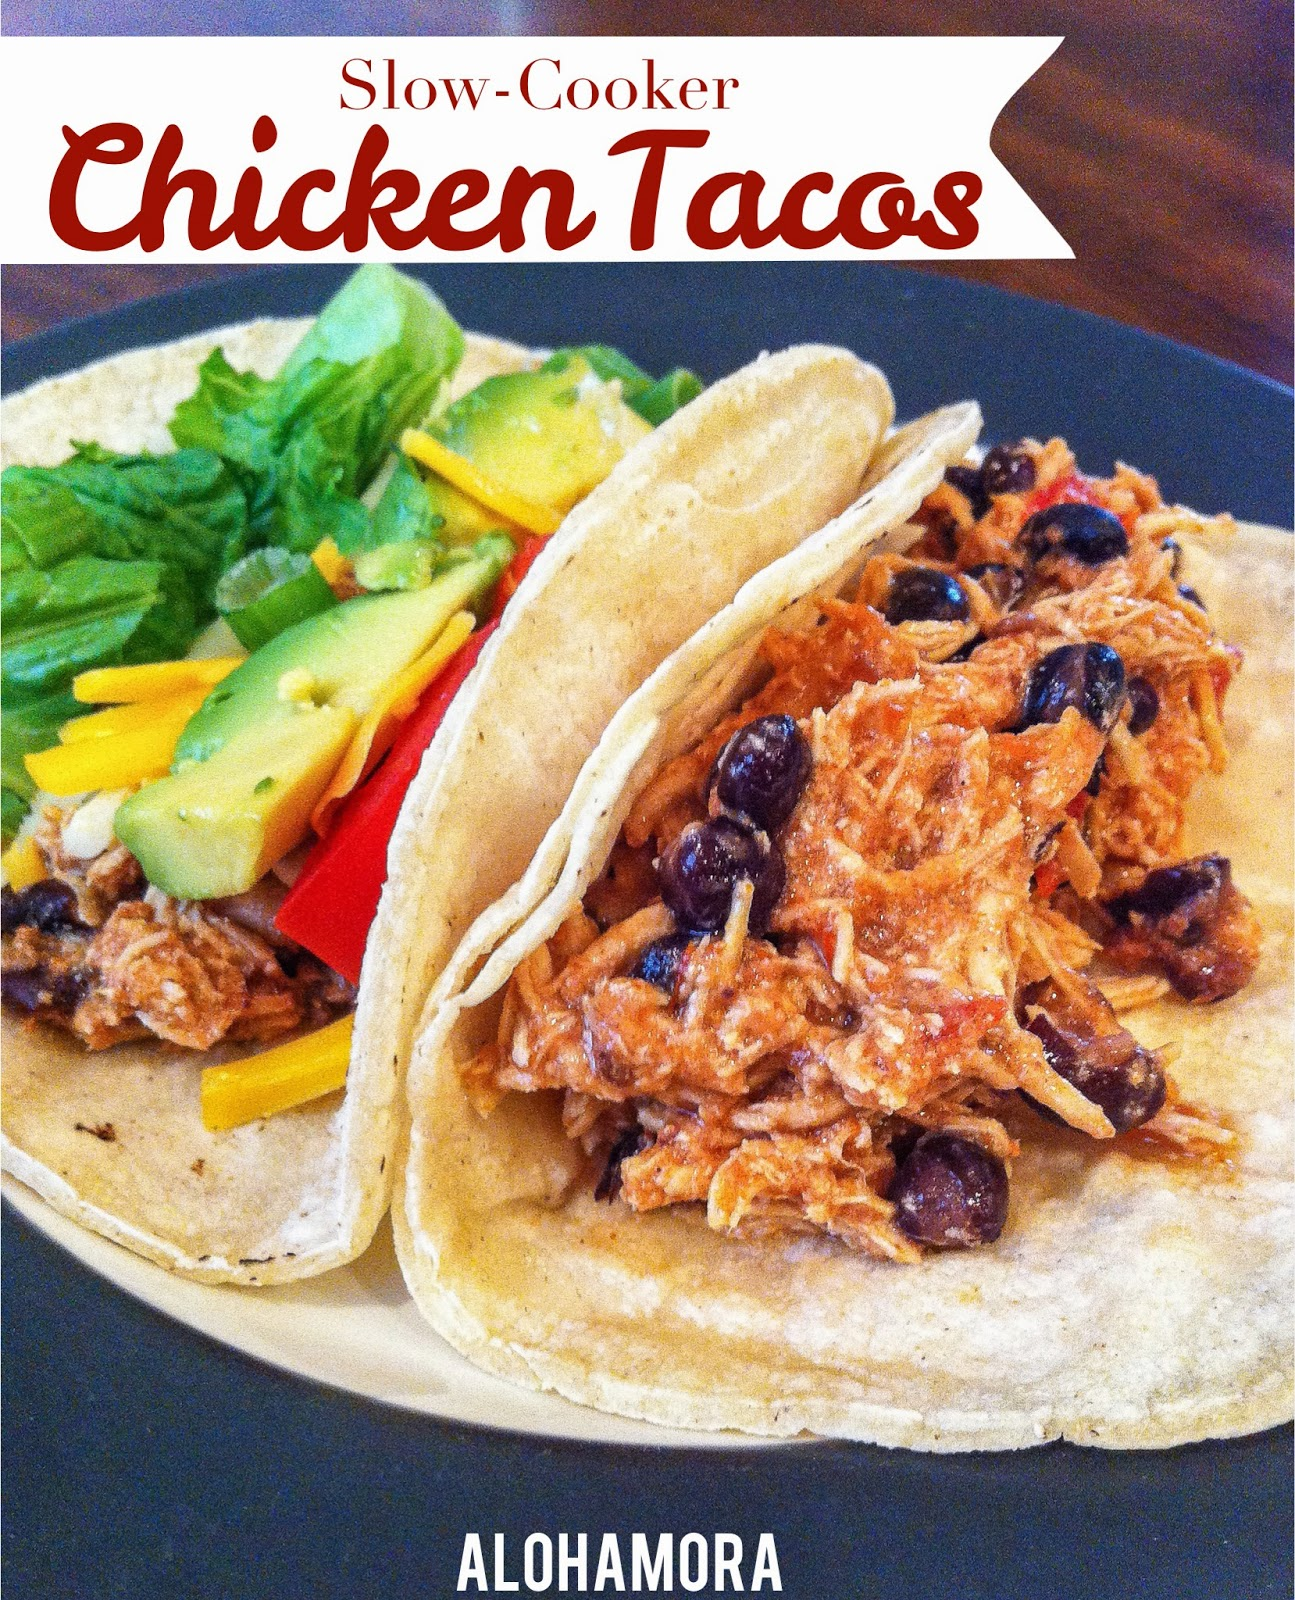 Slow-Cooker/Crock-Pot Chicken Tacos, Nachos, Salad, or more.  Easy and fast to throw together with awesome flavor. Alohamora Open a Book http://www.alohamoraopenabook.blogspot.com/